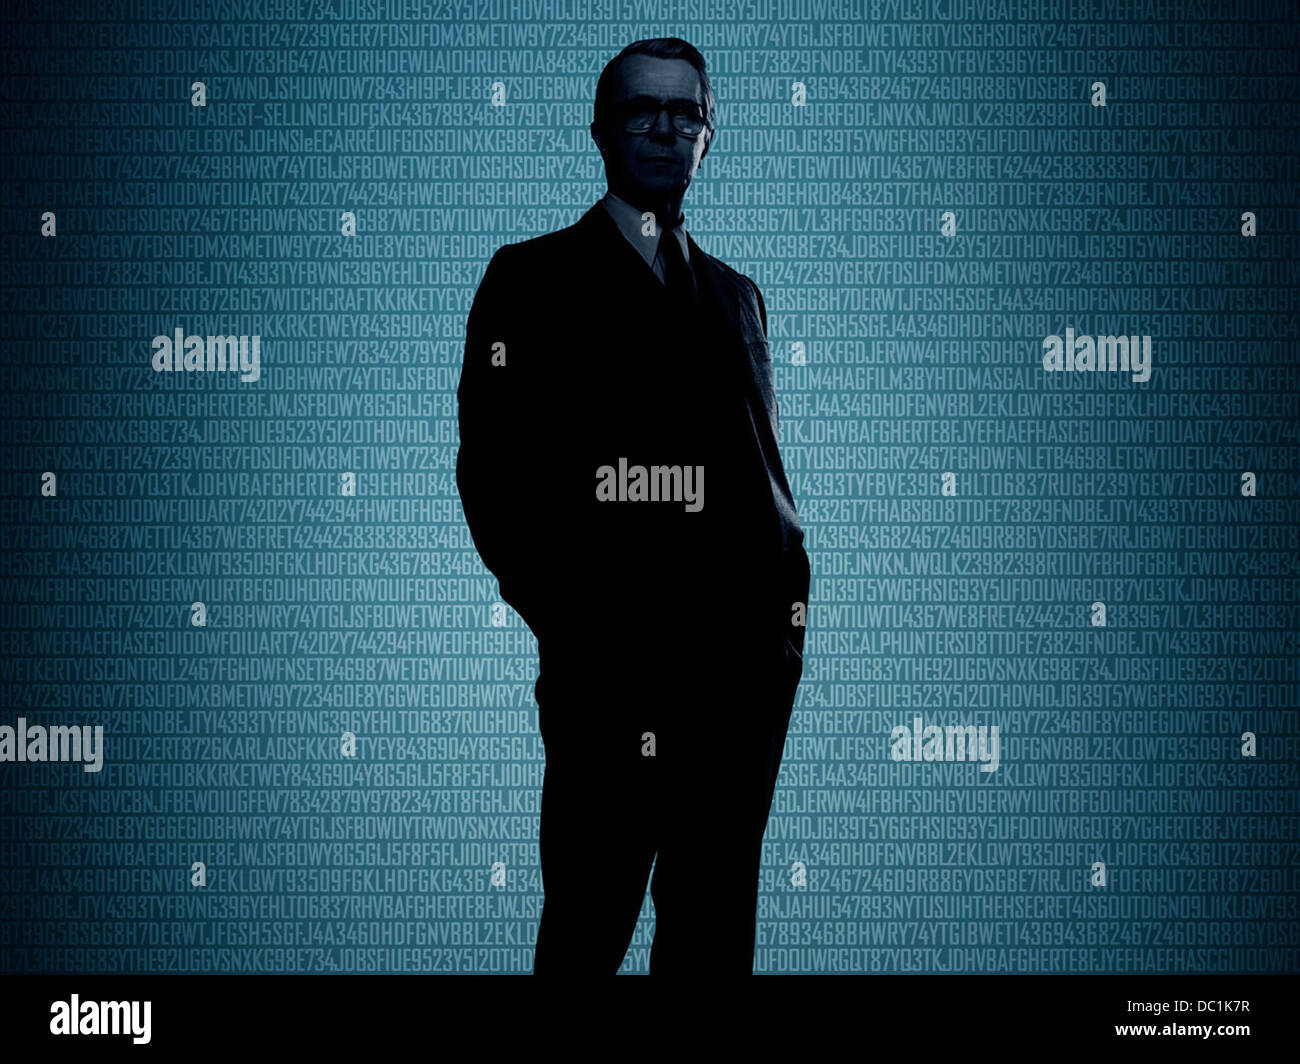 TINKER TAILOR SOLDIER SPY (2011) GARY OLDMAN TOMAS ALFREDSON (DIR) 012 MOVIESTORE COLLECTION LTD - Stock Image